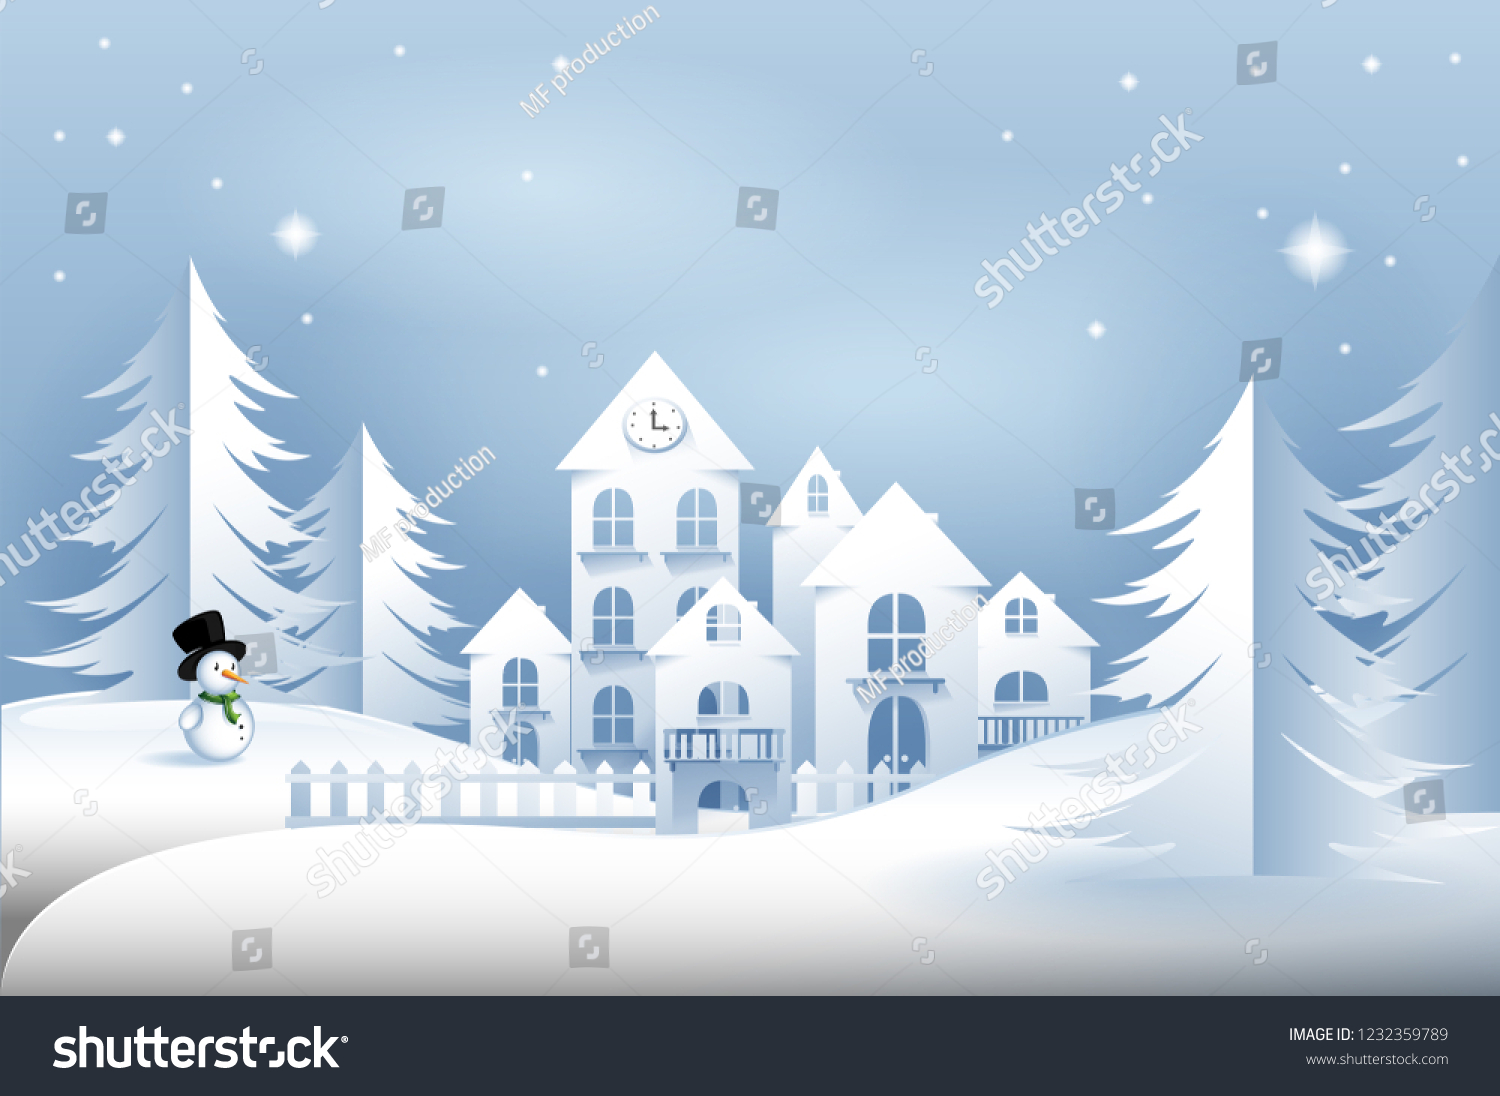 Winter Landscape Vector Background Paper Cut Stock Vector (Royalty ...